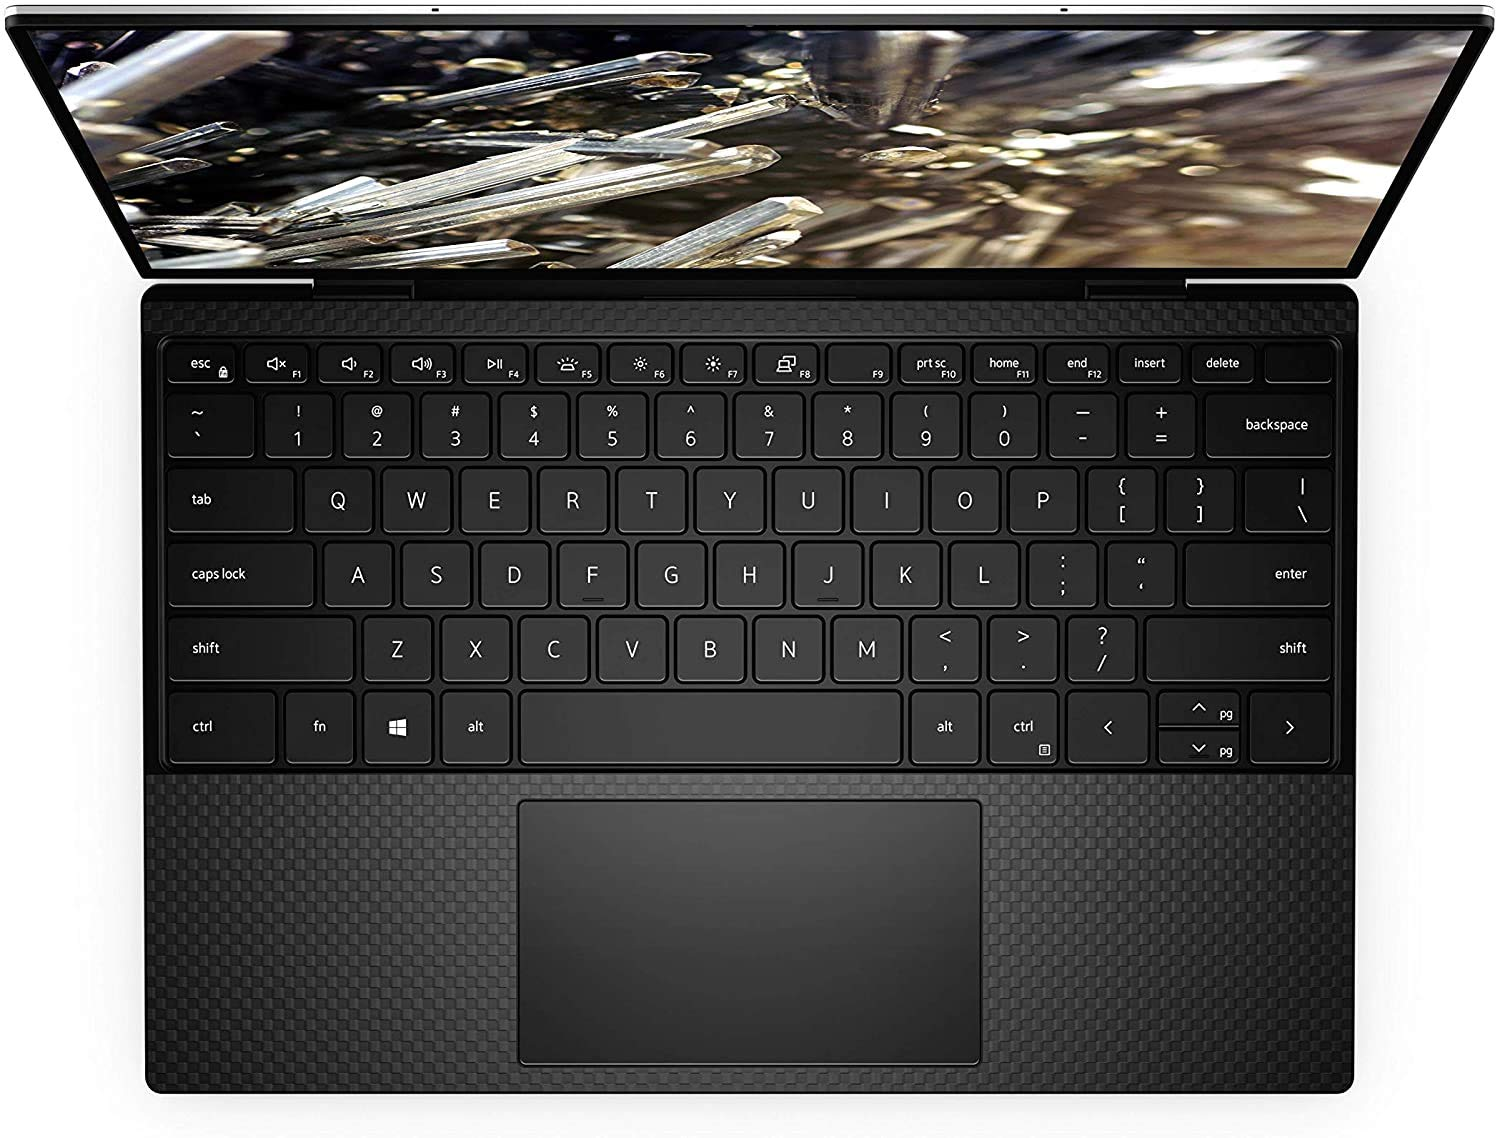 US Layout Dell XPS 13 9300 Accessories Ultra Thin Keyboard Cover for 2020 Dell New XPS 13 9300 13.4 inch Laptop Keyboard Cover Protective Skin